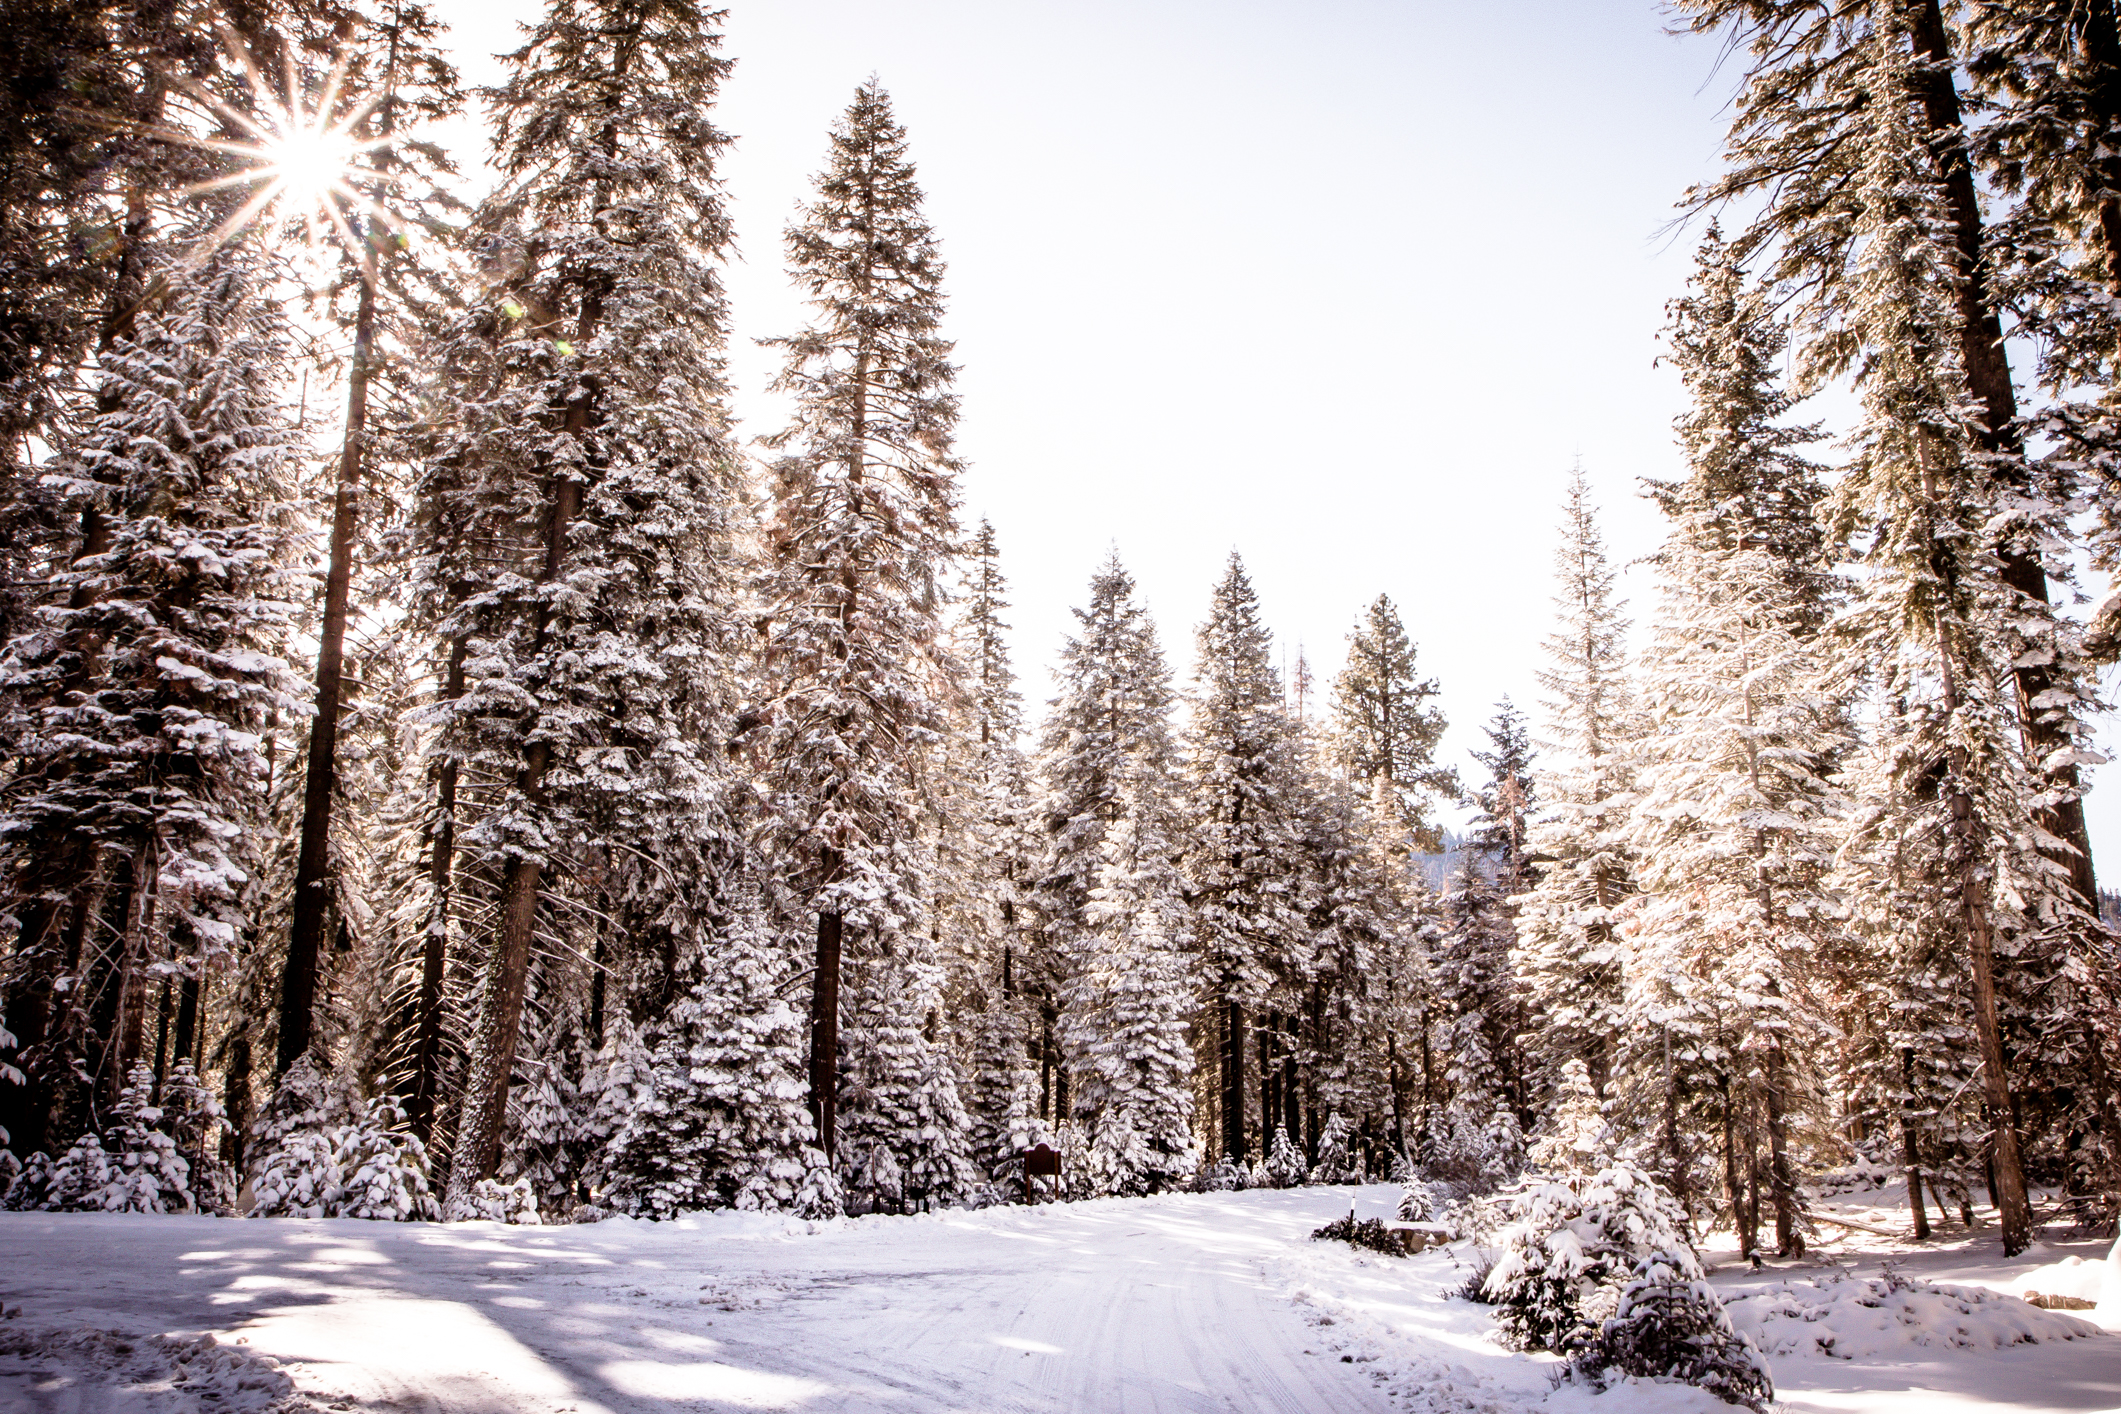 The sun peeks through pine trees covered in snow in Sequoia National Park NotSoSAHM